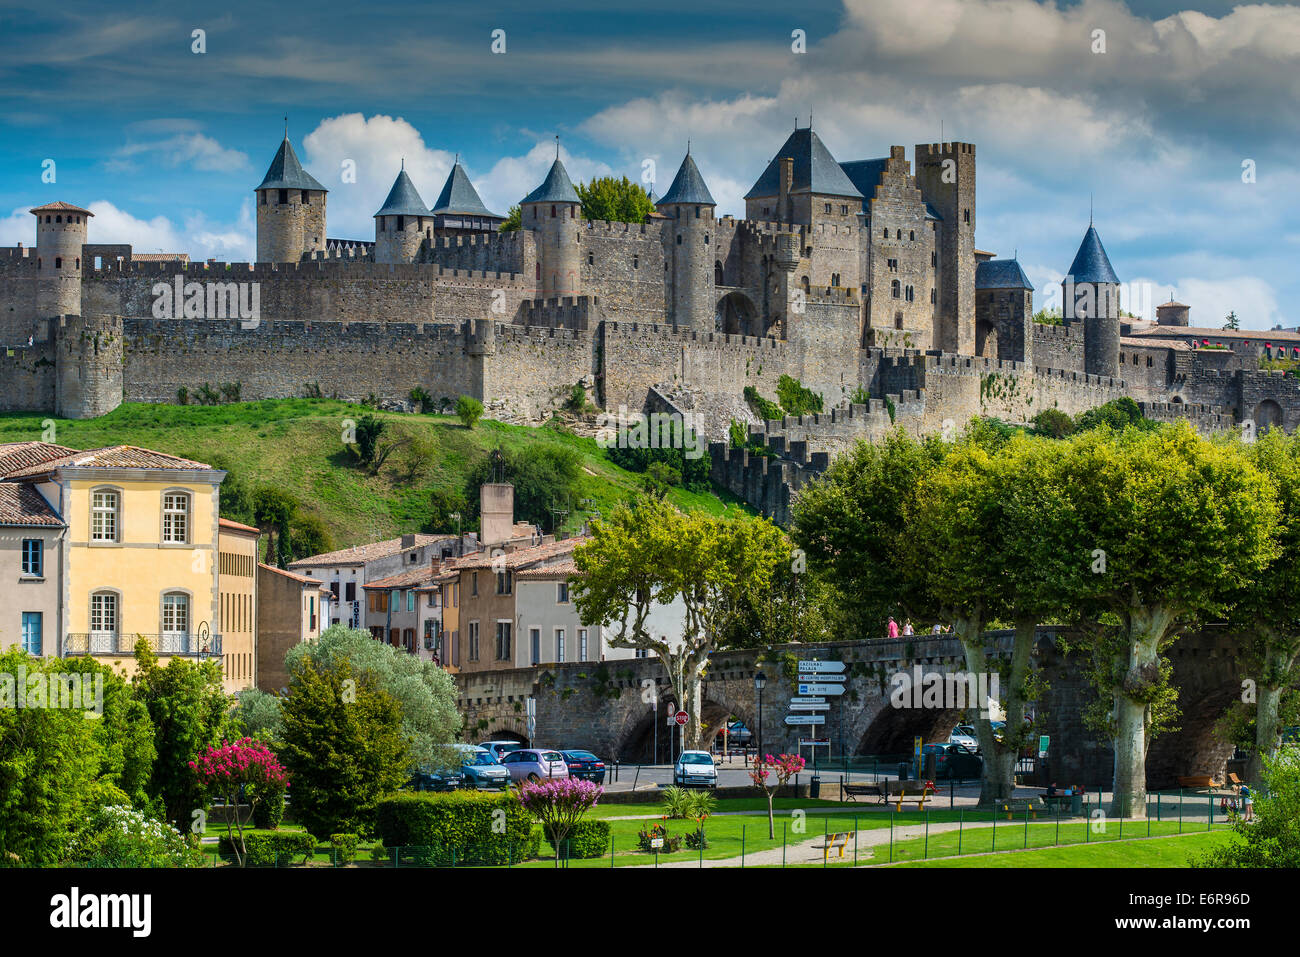 50 Places In Europe You Need To Visit In Your Lifetime ... |Uzziahs Fortified Cities